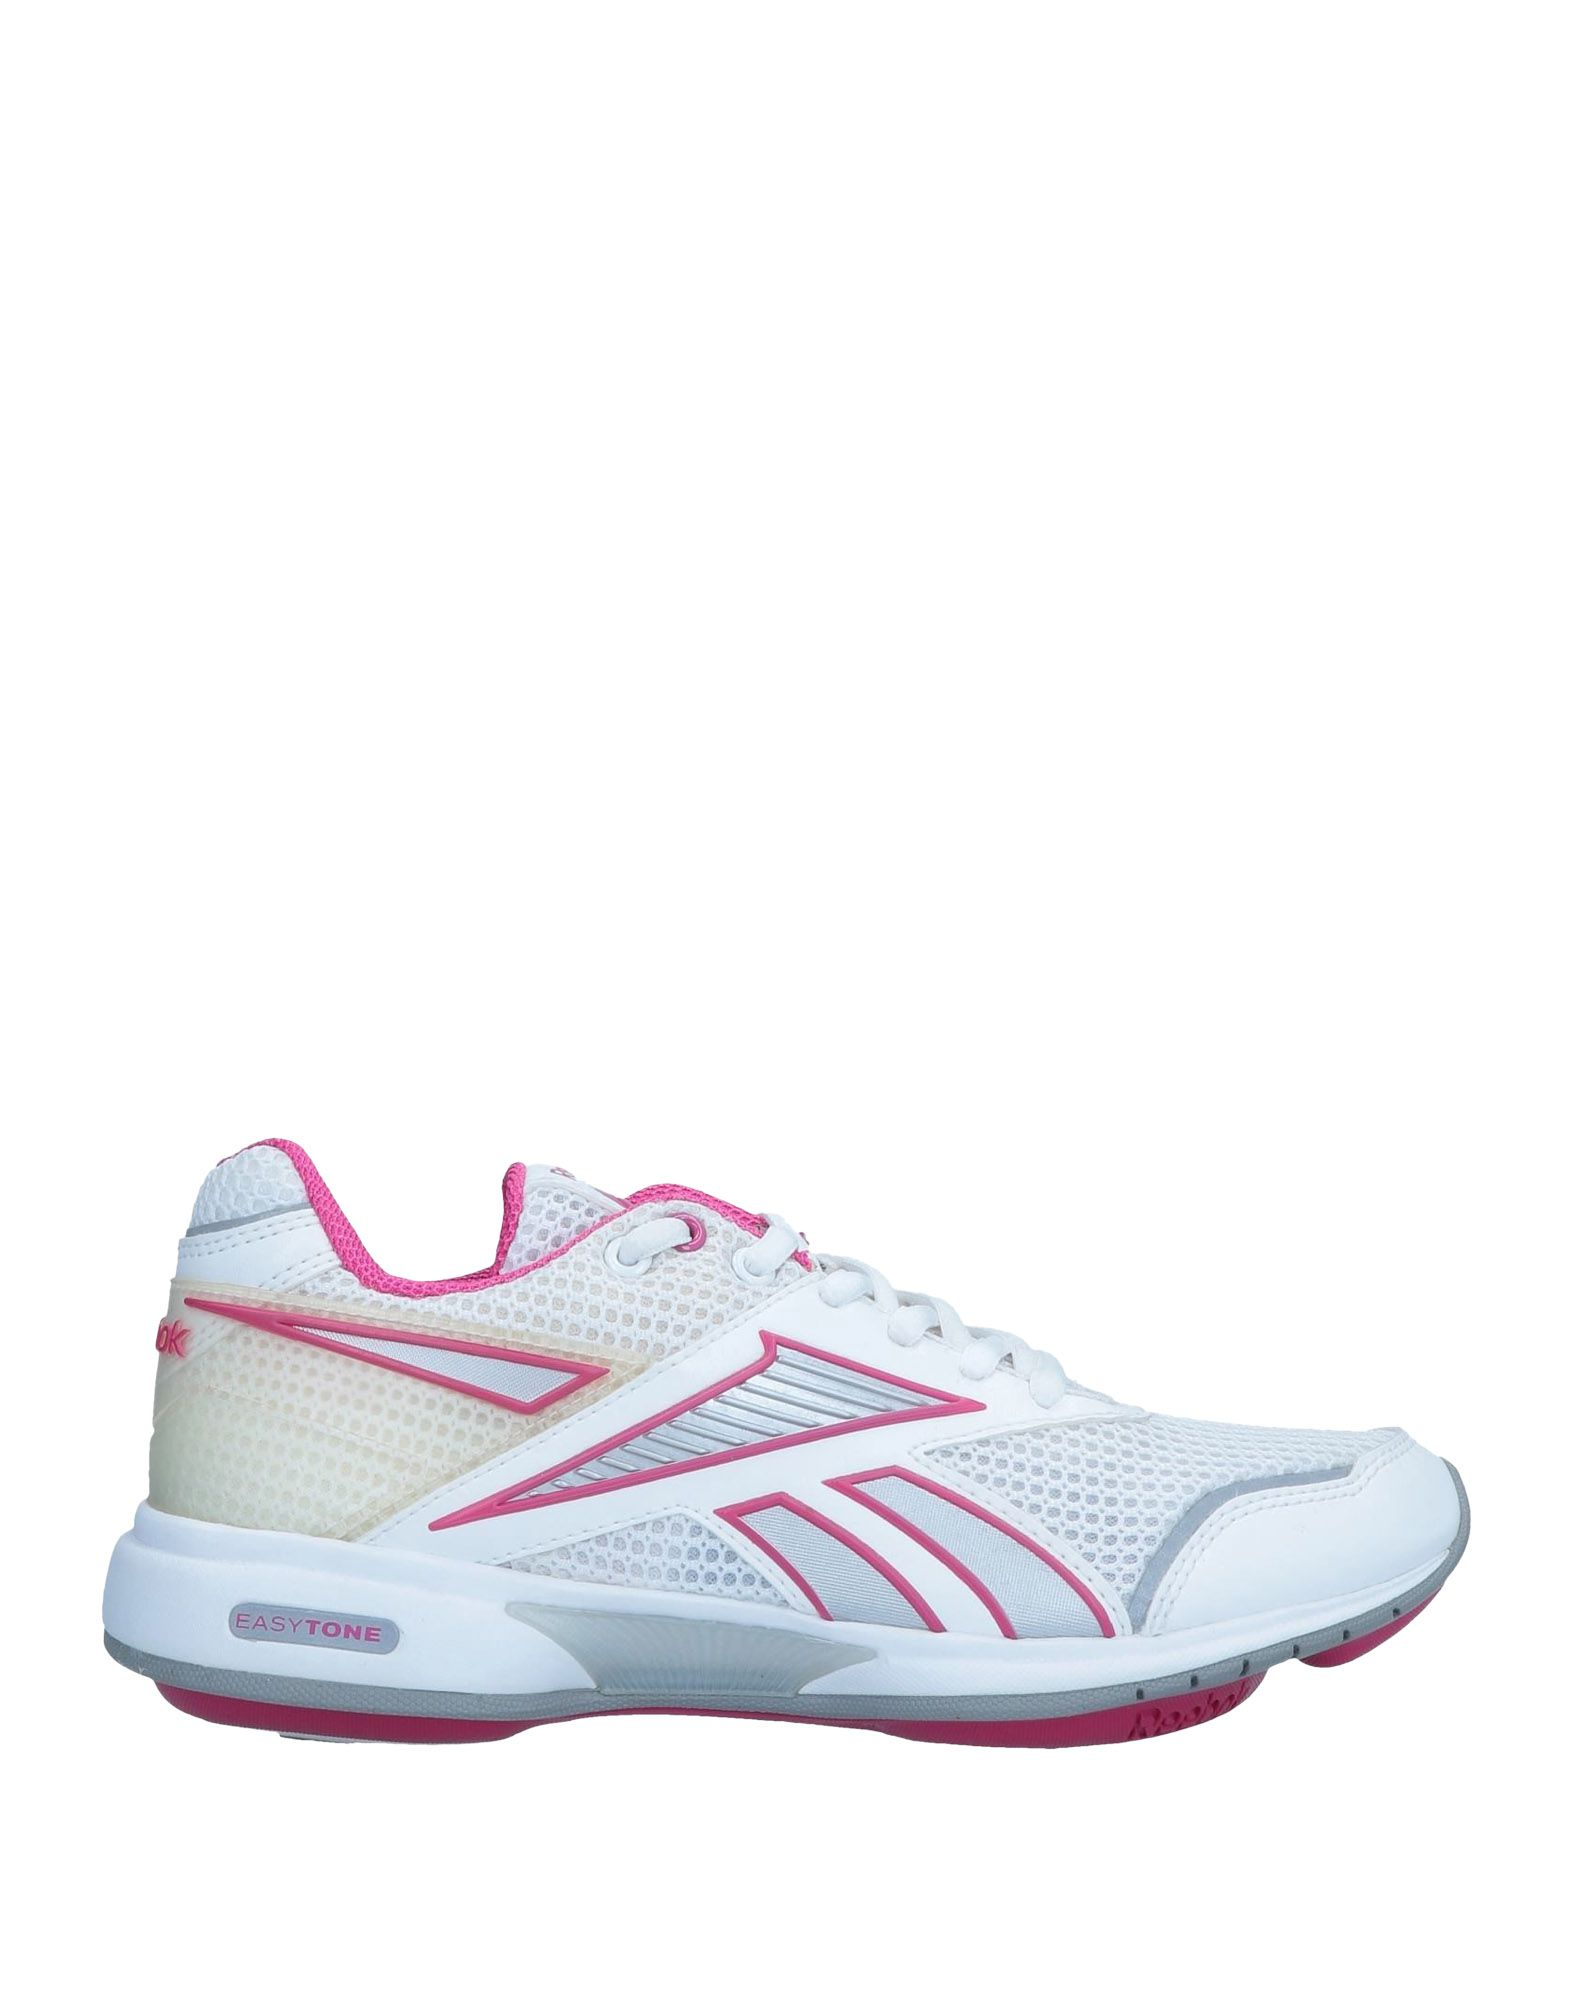 Reebok Sneakers - Canada Women Reebok Sneakers online on  Canada - - 11546153XX 8fb098